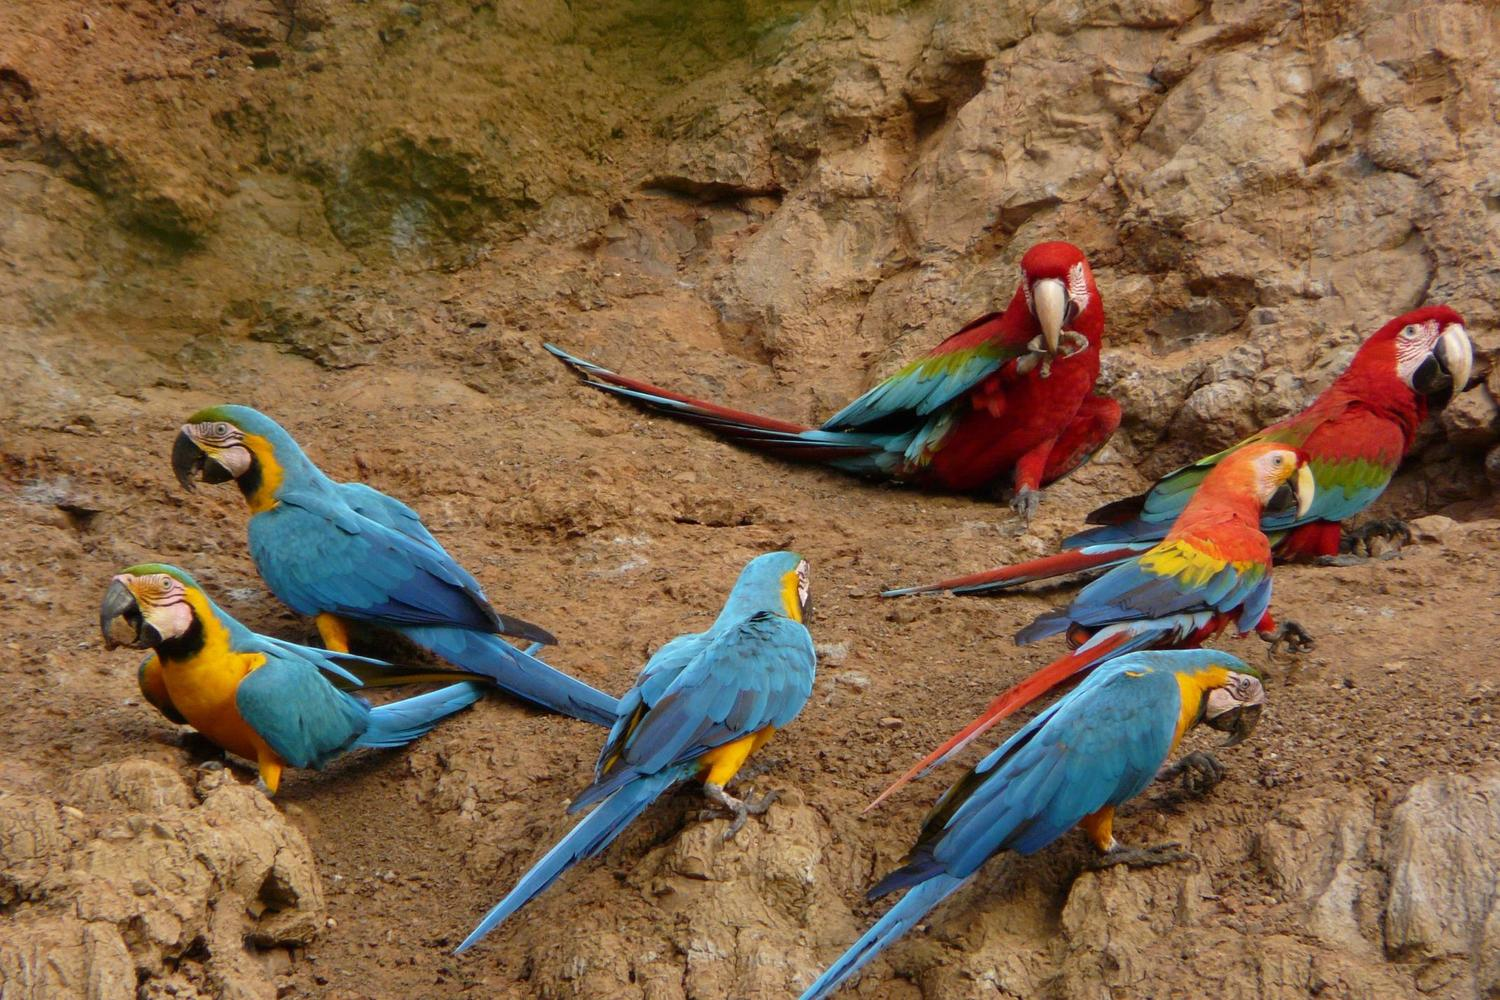 Macaw at the clay lick in the Peruvian Amazon